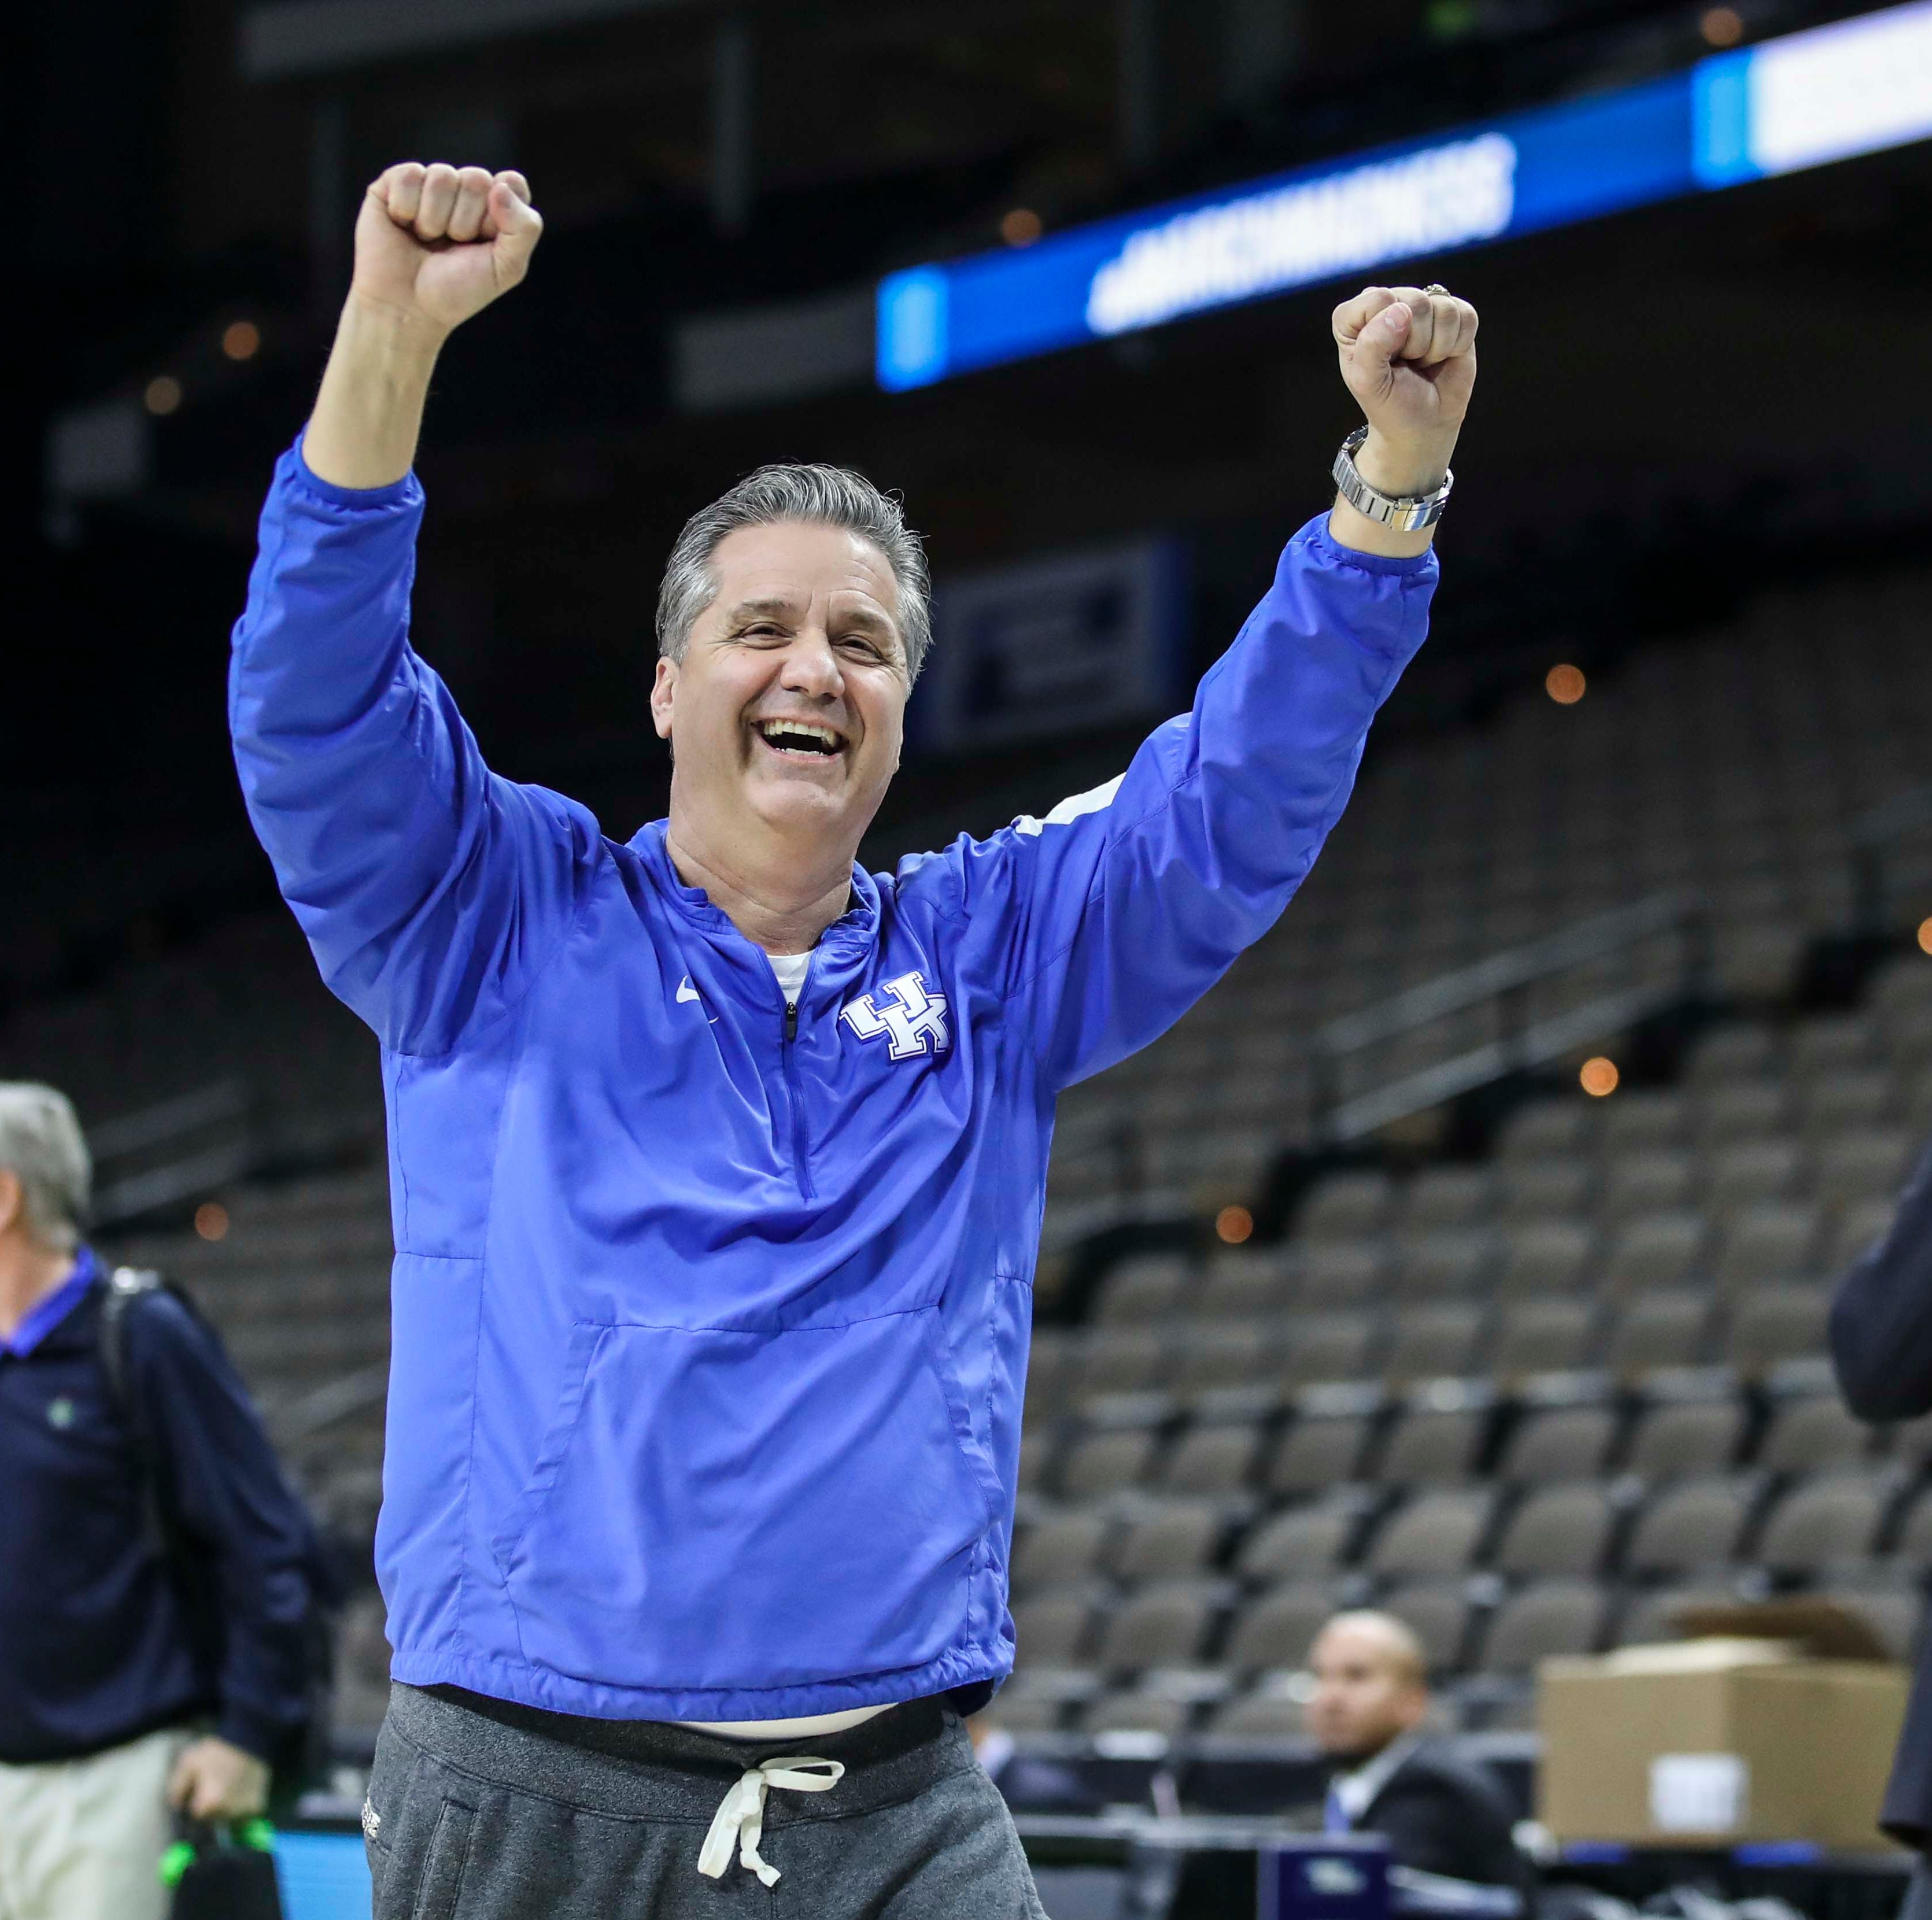 John Calipari shoots down UCLA rumors, says he wants to retire at UK